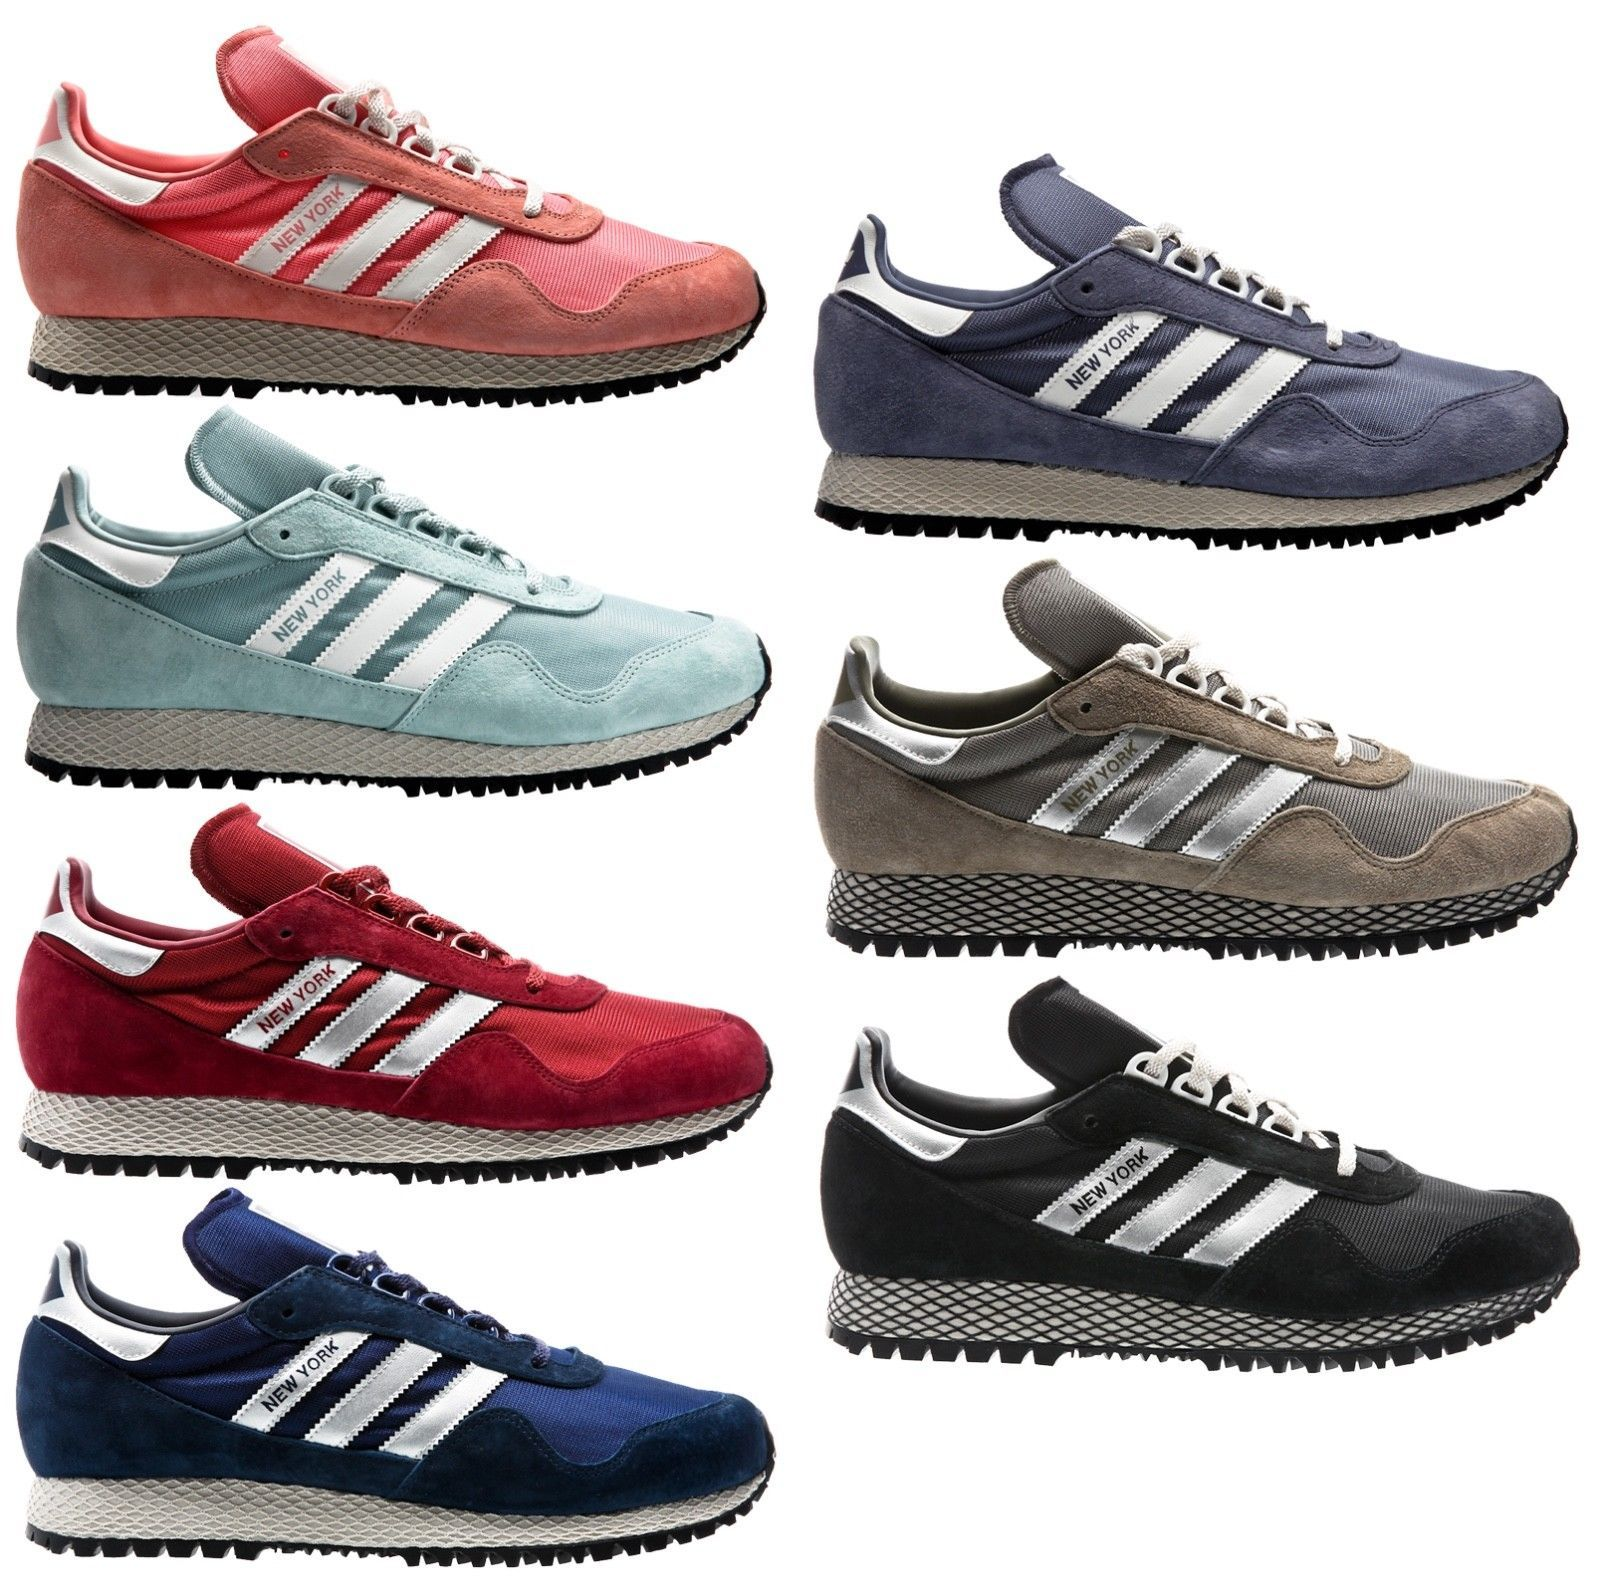 Details about Adidas Originals New York Men Sneaker Mens